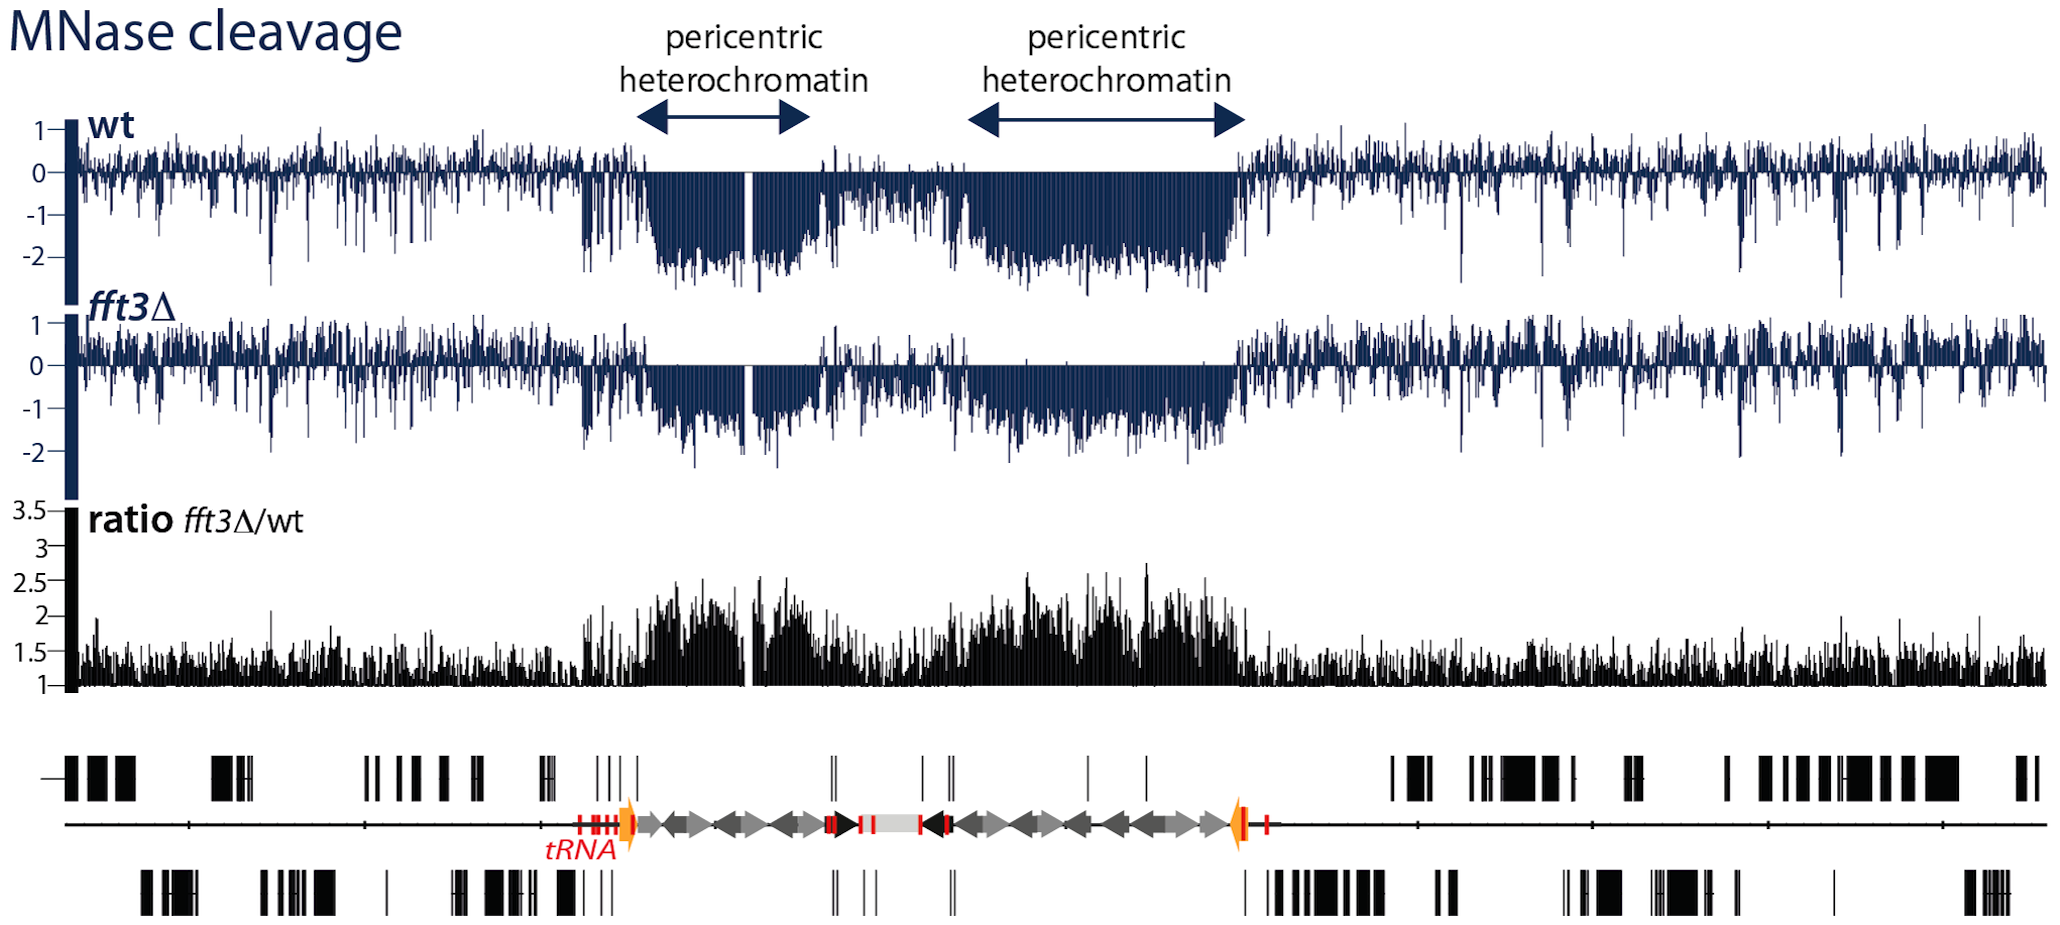 Fft3 is affecting chromatin structure at pericentric heterochromatin.